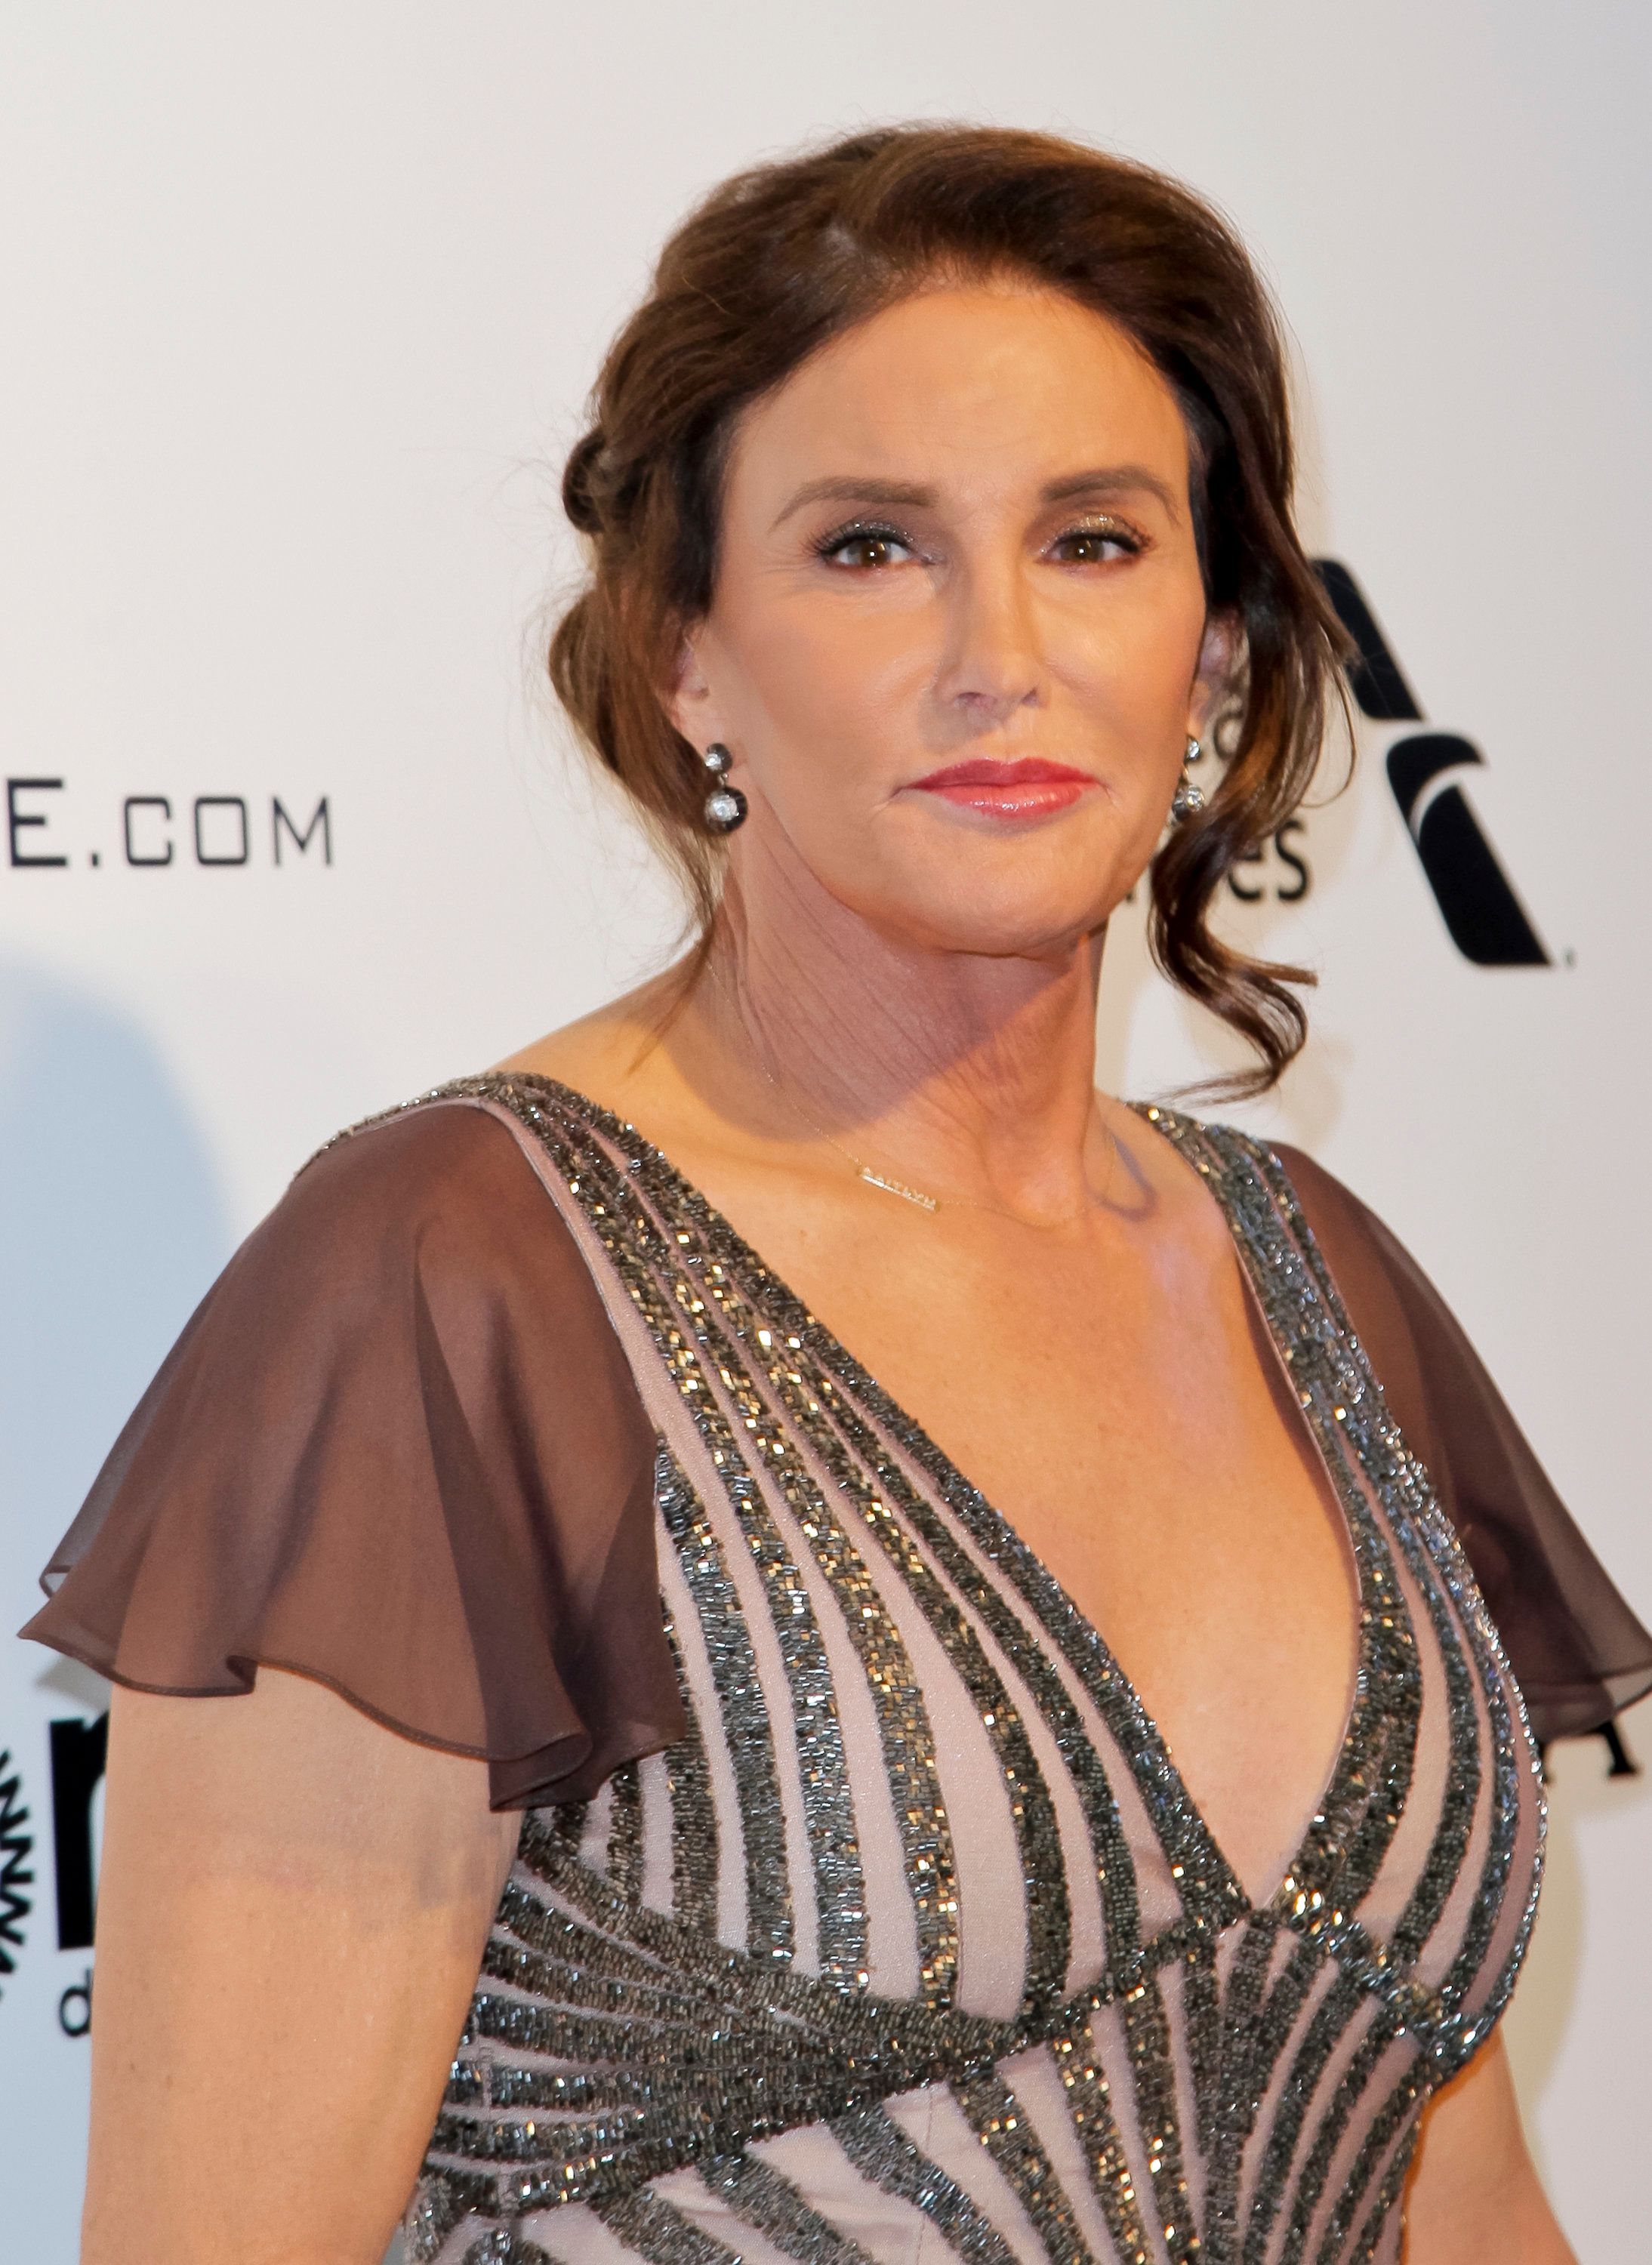 Caitlyn Jenner attends the 2017 Elton John AIDS Foundation Academy Awards Viewing Party in  West Hollywood, California, on February 26, 2017. / AFP / TIBRINA HOBSON        (Photo credit should read TIBRINA HOBSON/AFP/Getty Images)